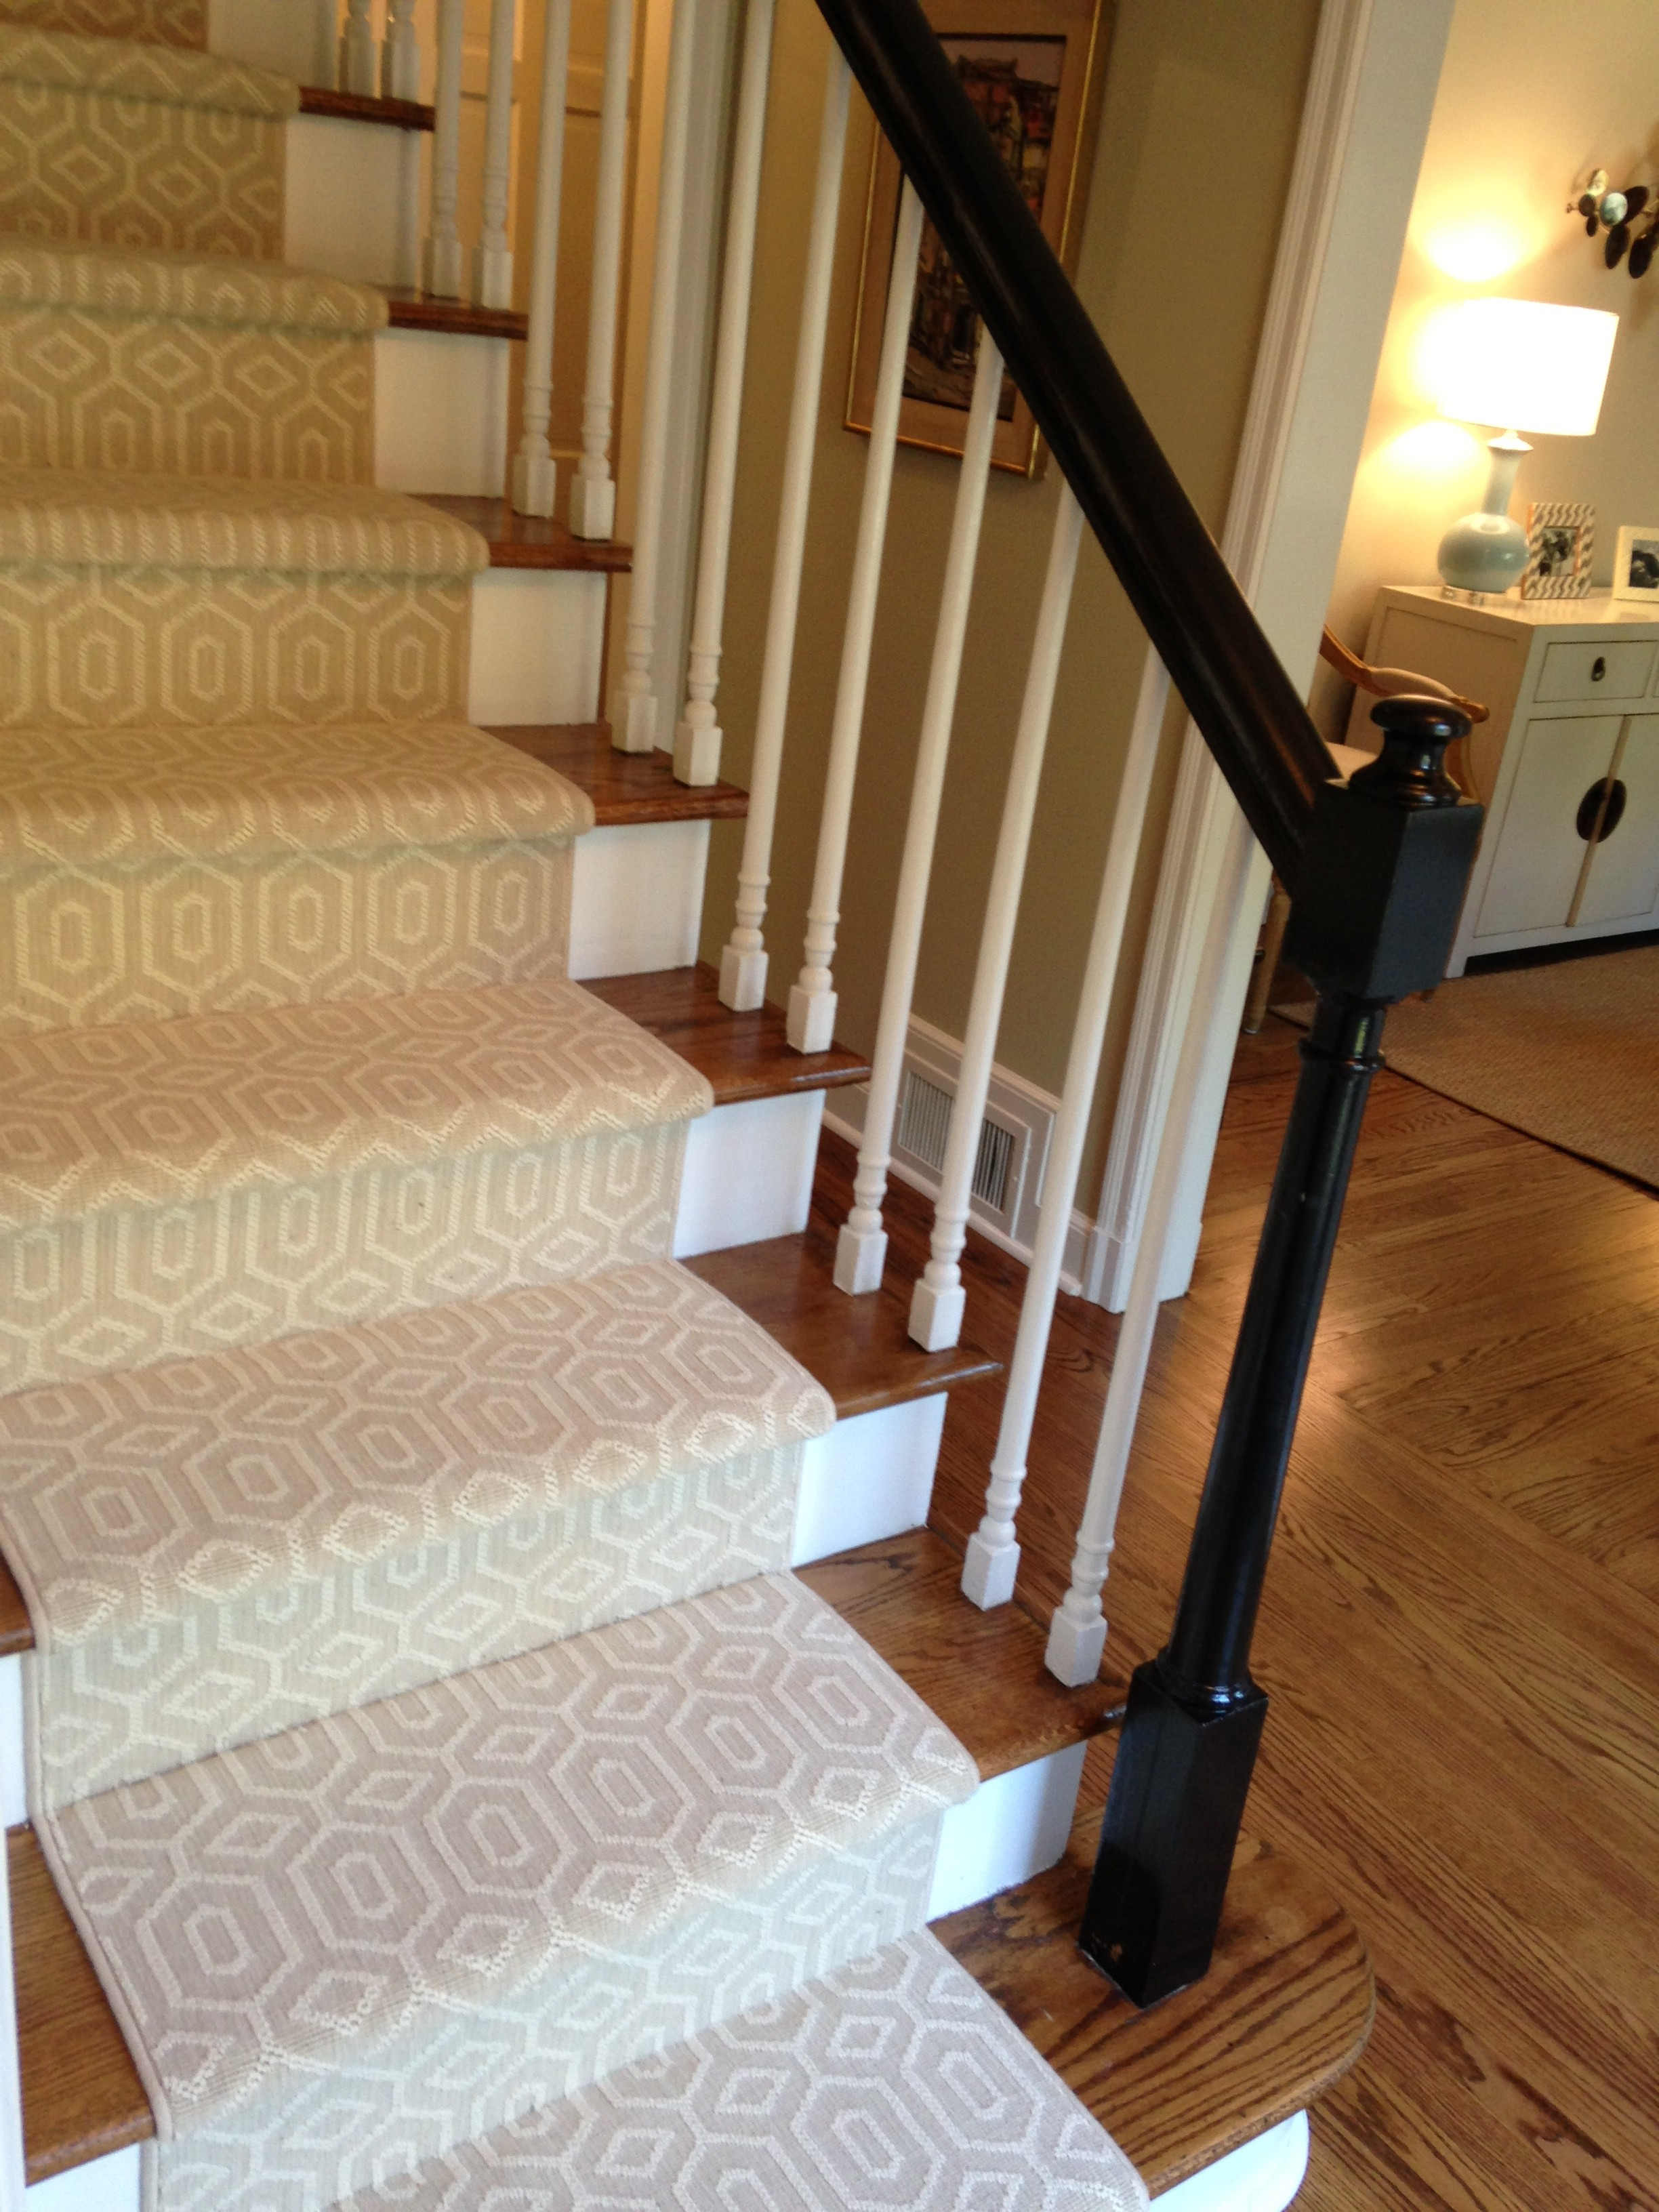 Cozy carpet for stairs choosing a stair runner: some inspiration and lessons learned kenbwfq